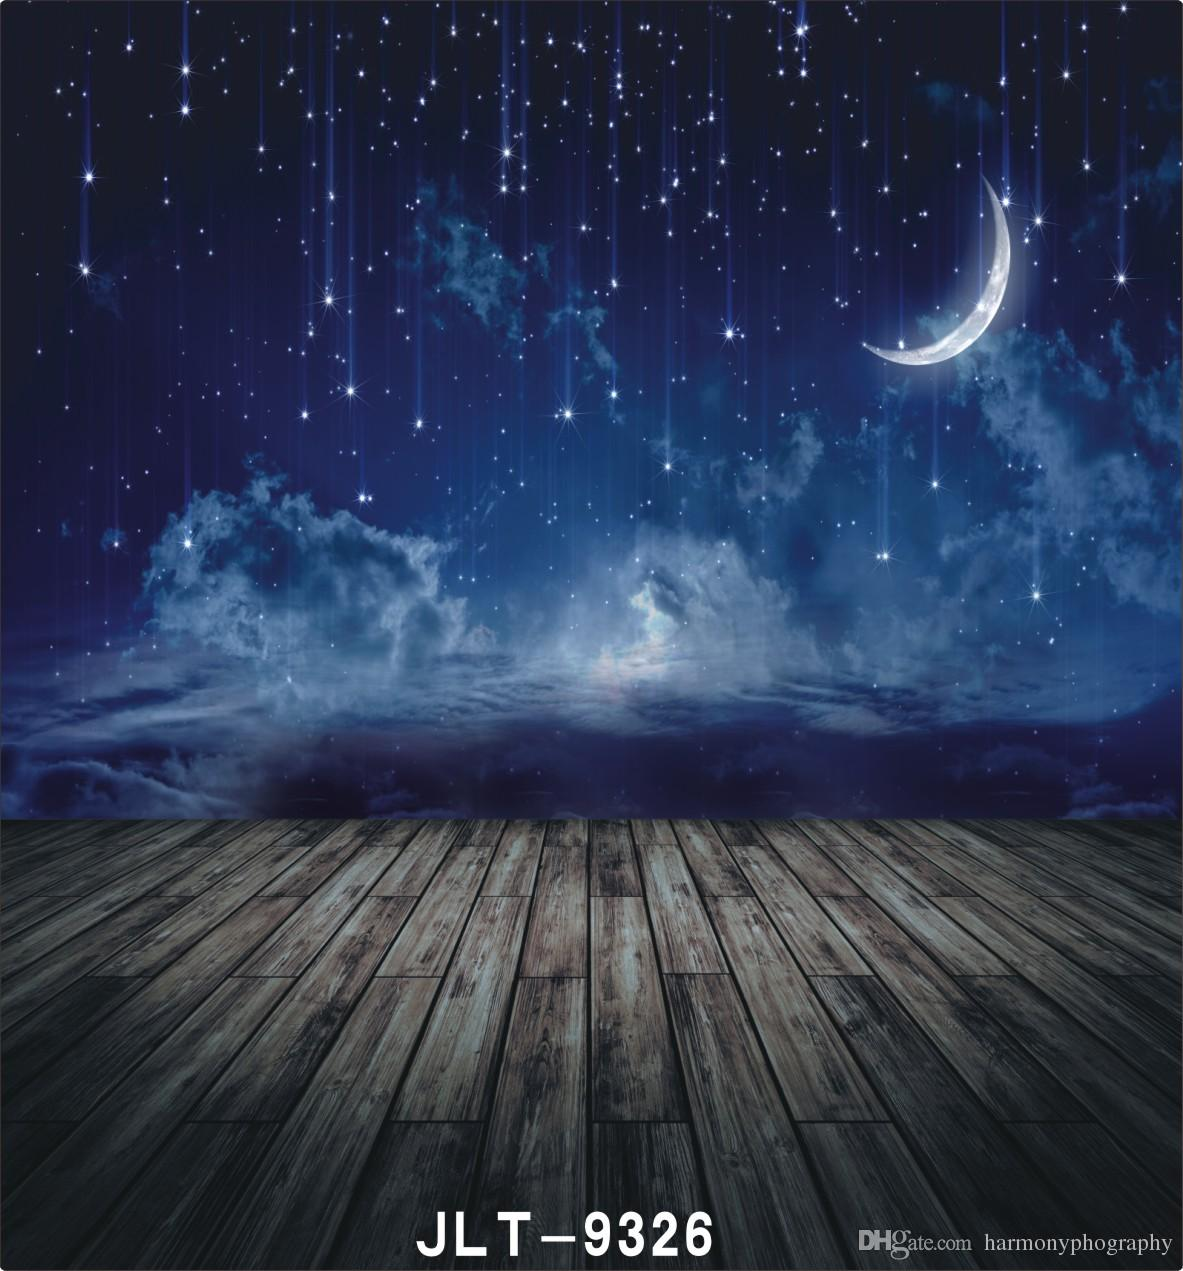 2019 Night Sky Shooting Star Moon Wooden Floor Photography 1183x1271